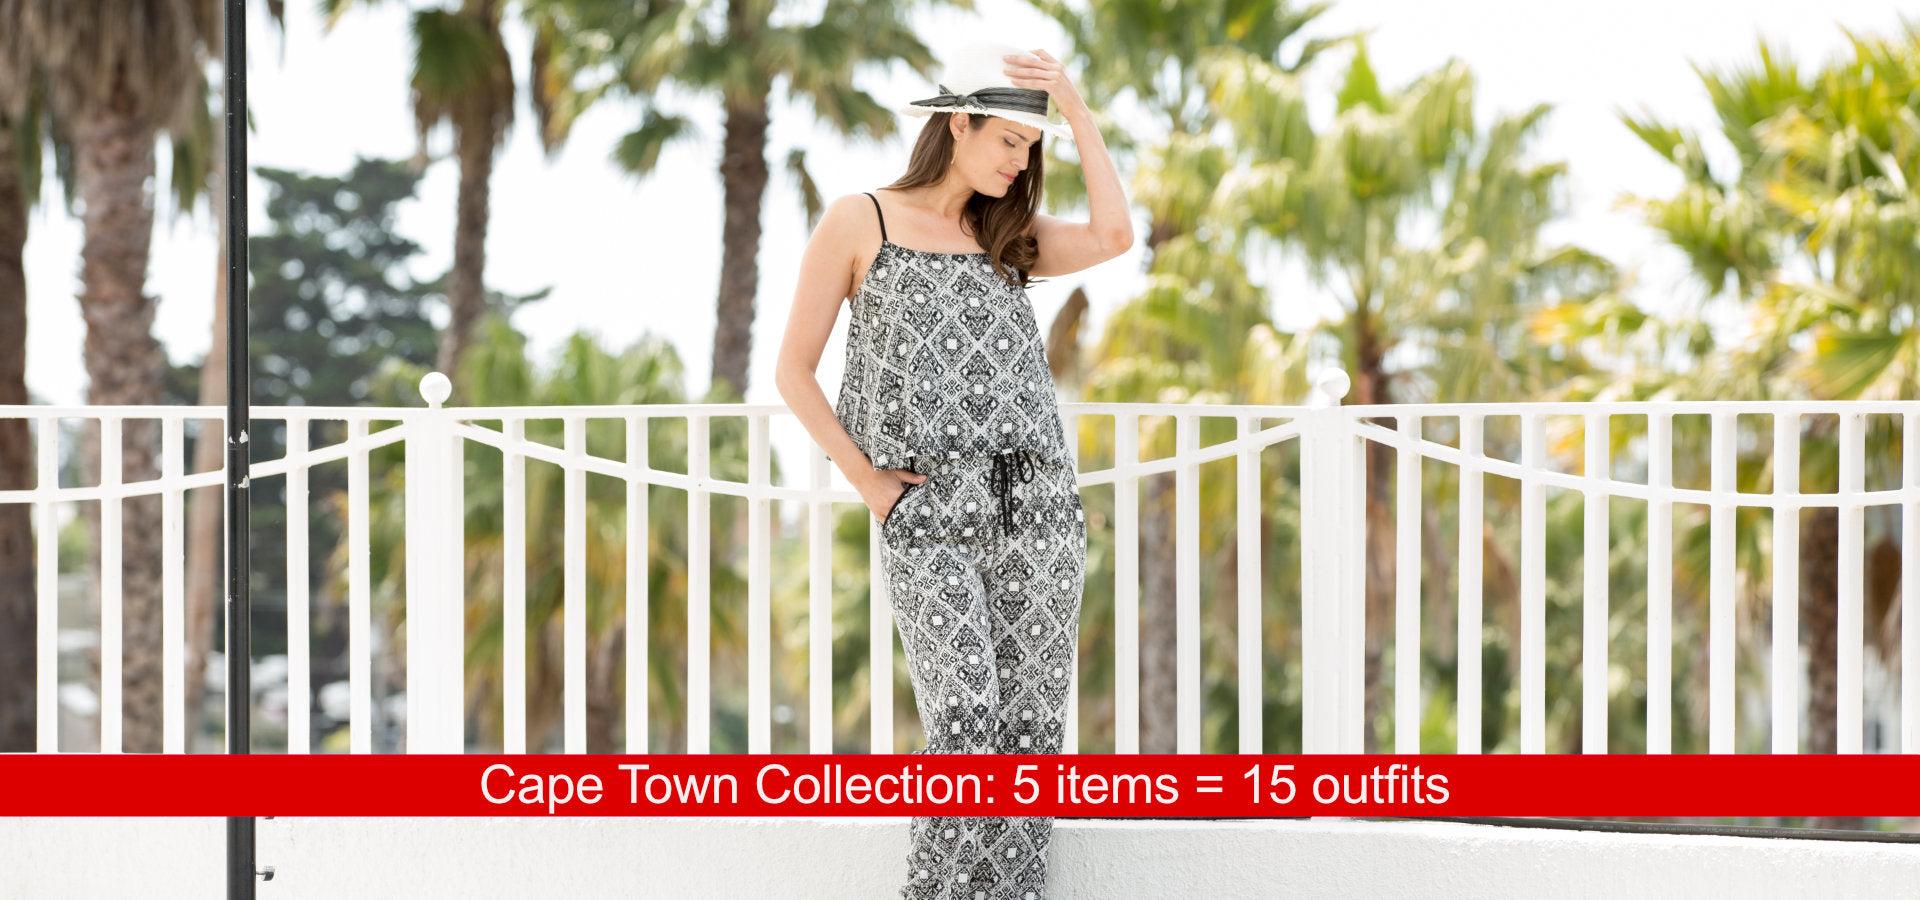 Cape Town Collection: 5 items = 15 outfits